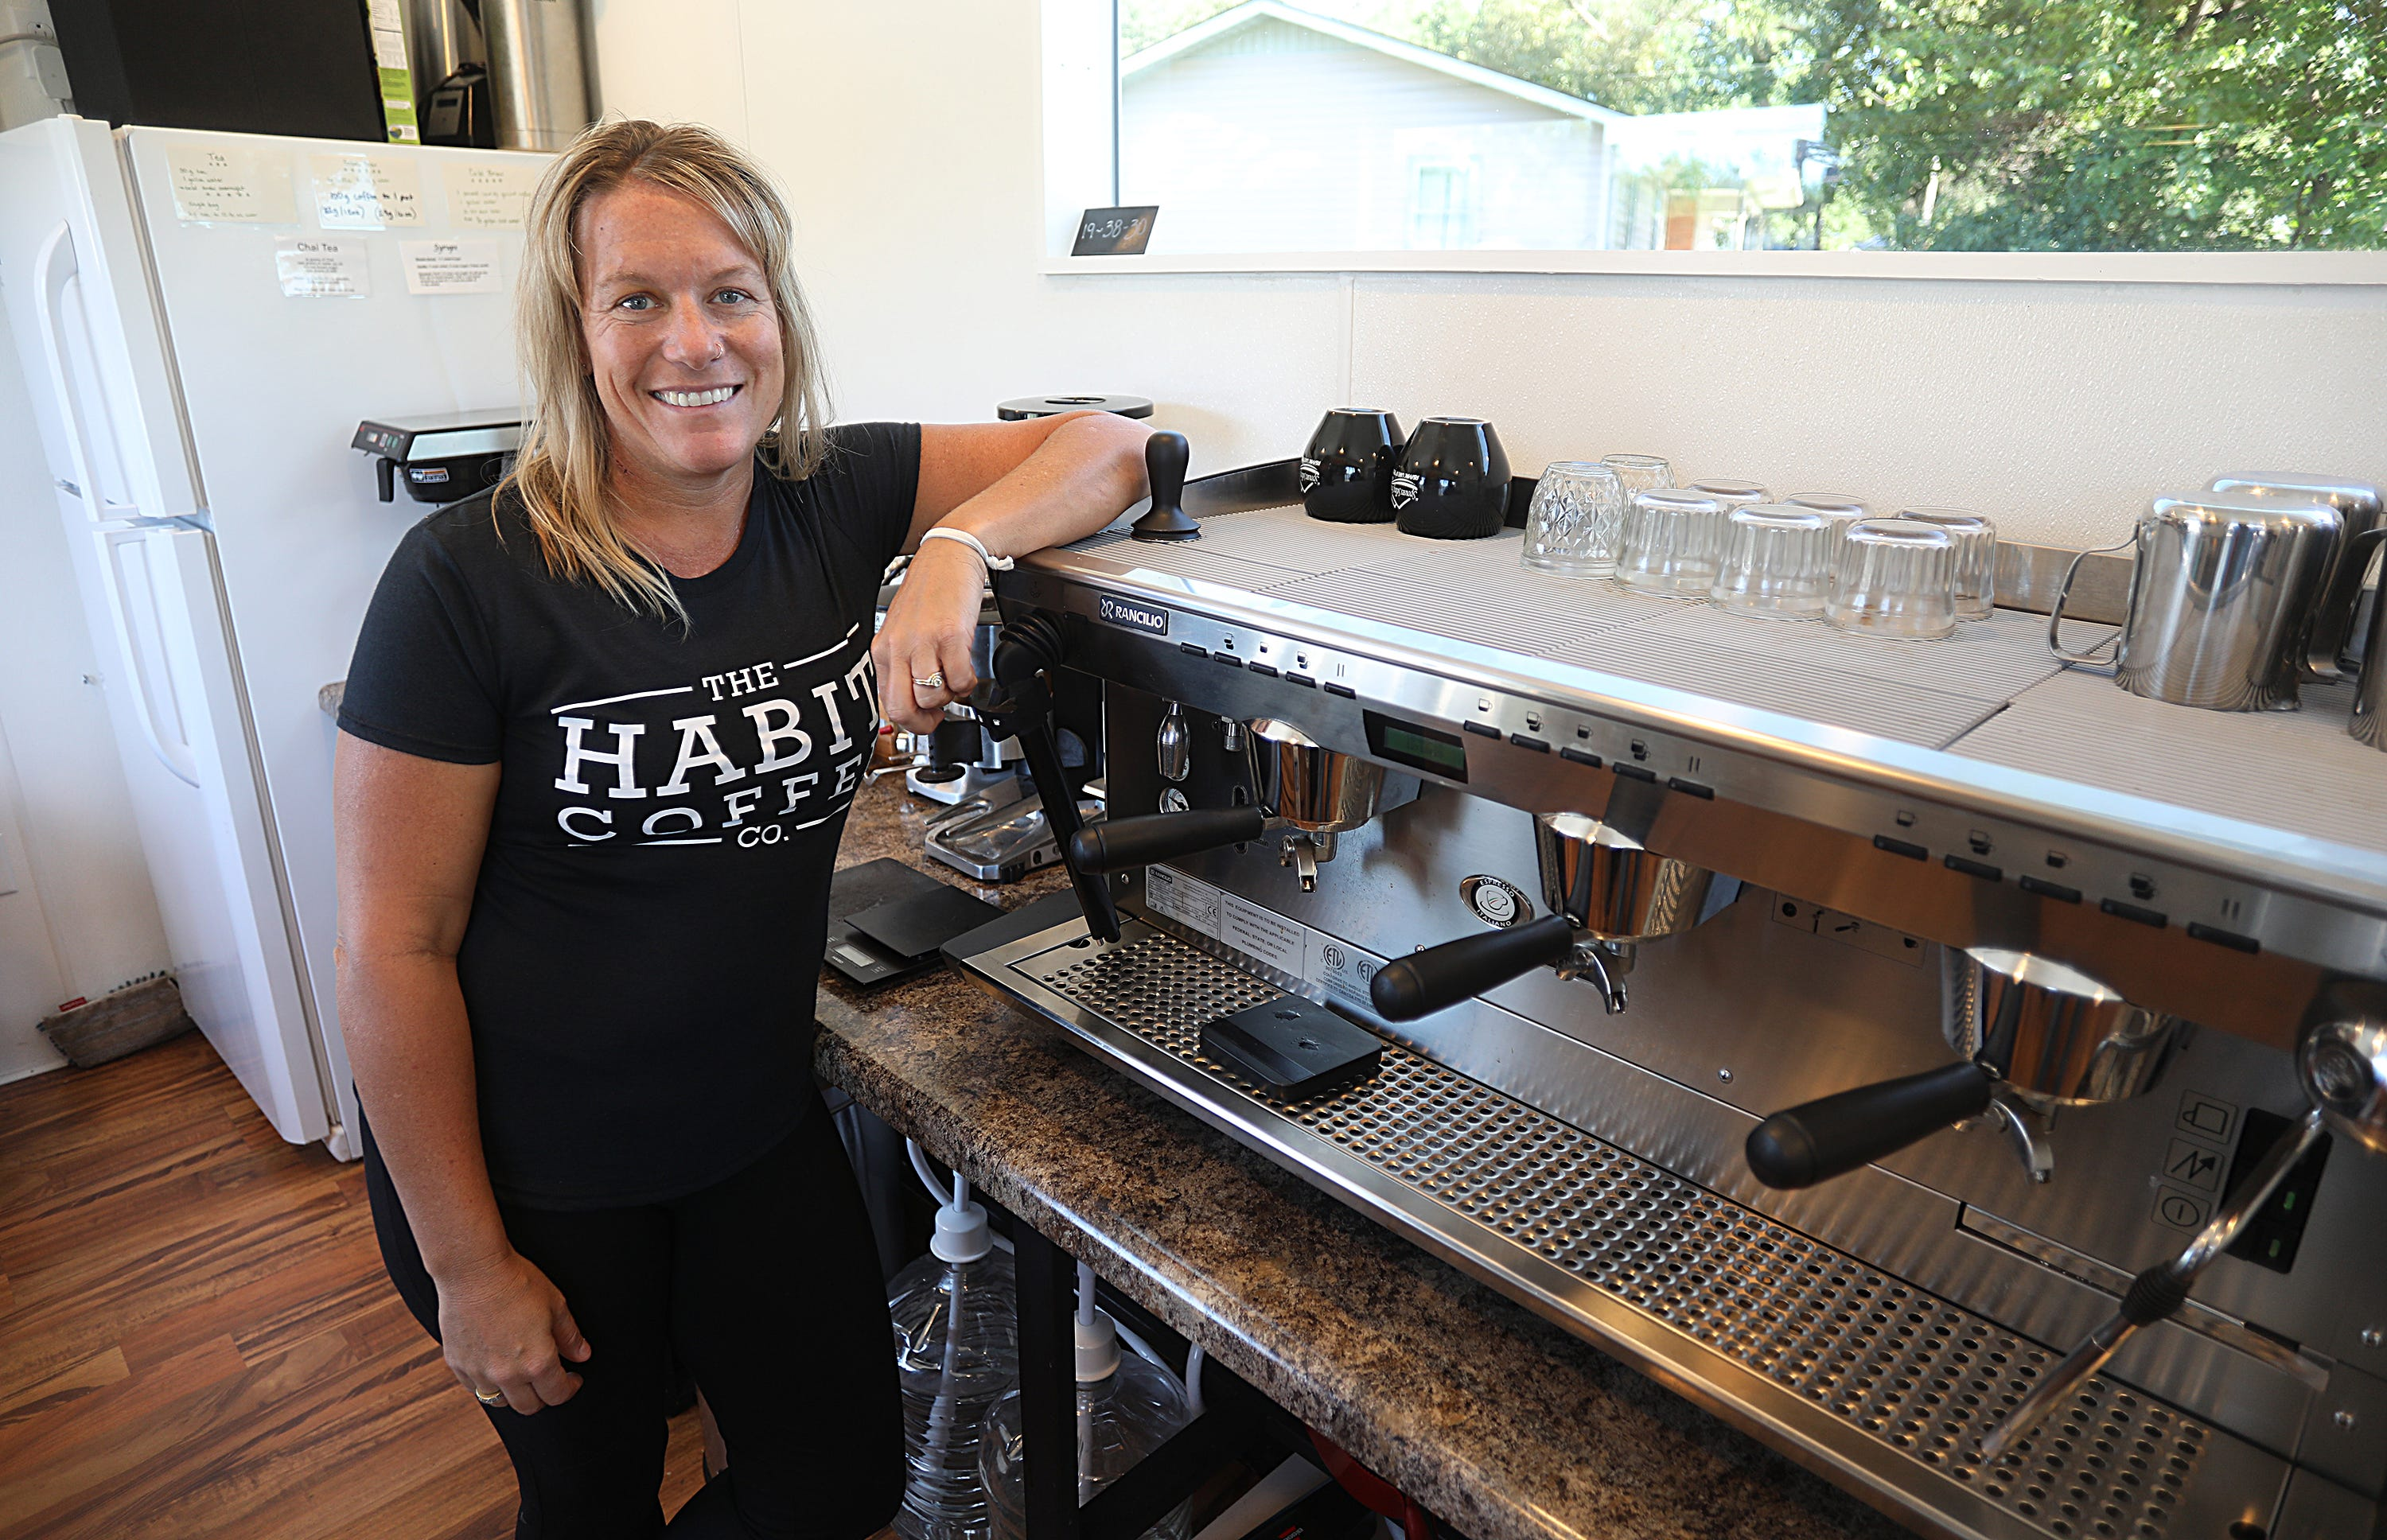 Caroline Bogema is the owner of The Habit Coffee Company, a mobile coffee shop in Fair Grove.